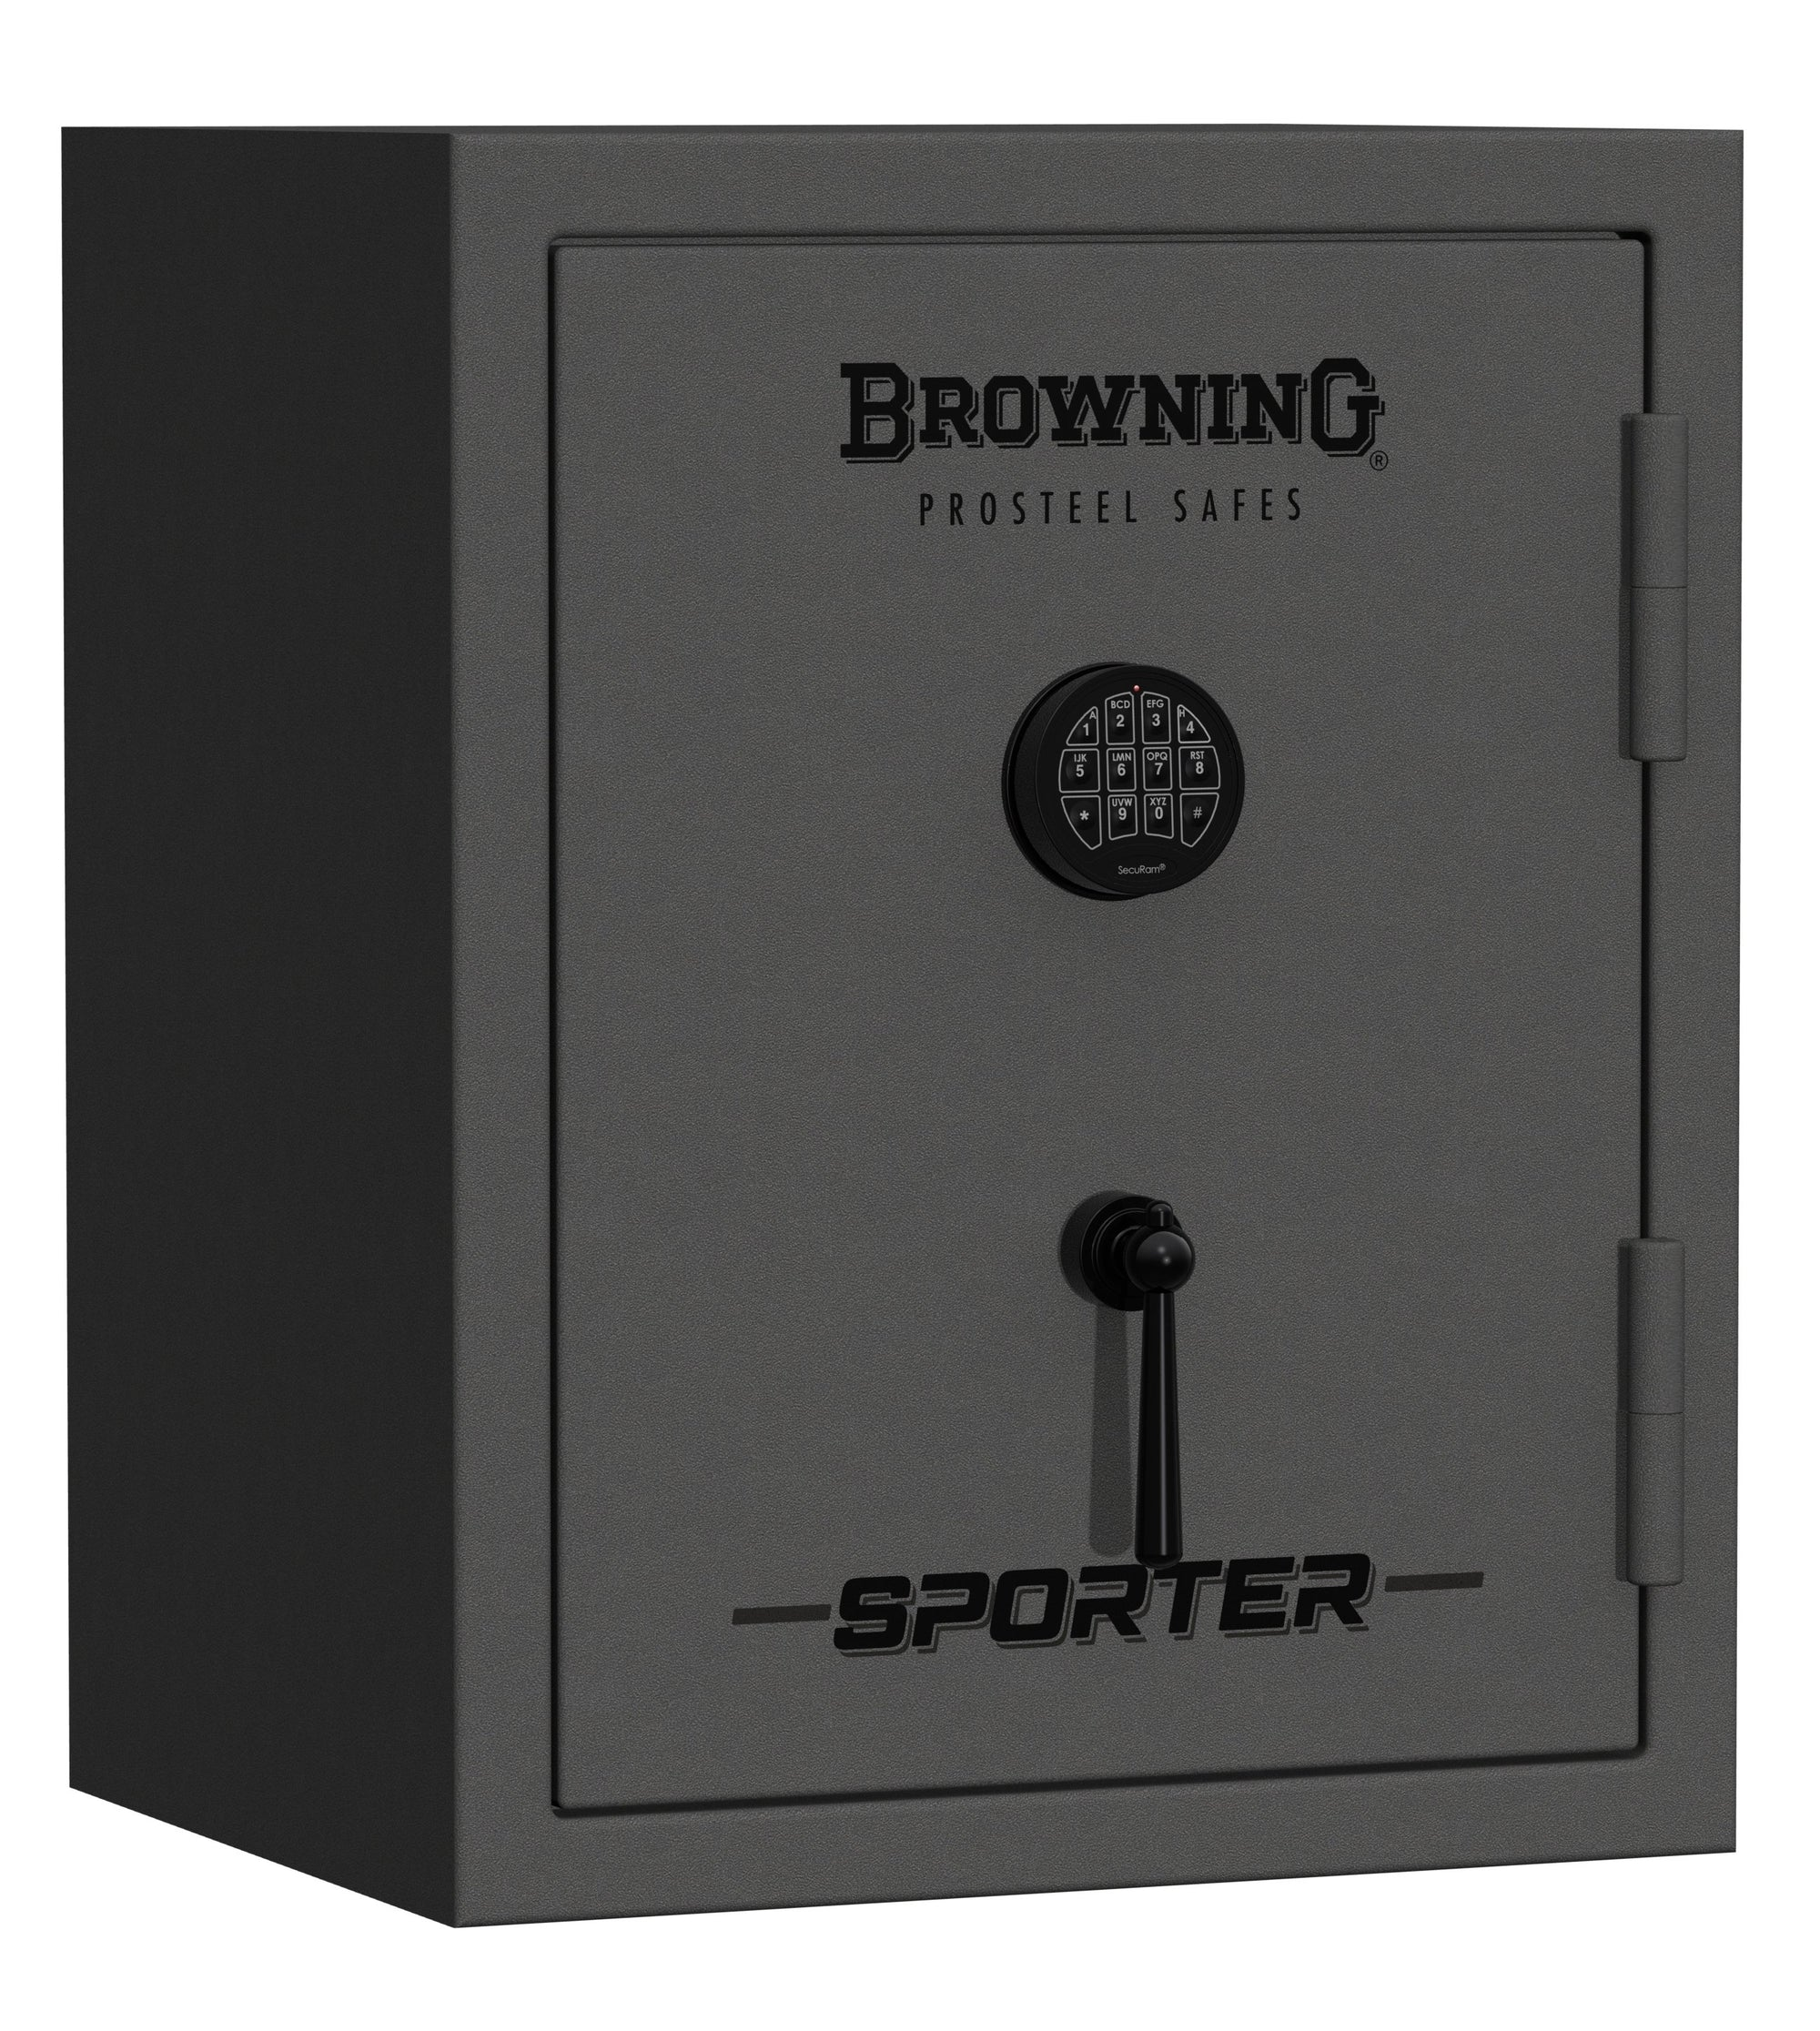 Gun Safes & Rifle Safe Products - Browning SP9 Core Collection Sporter Compact Safe - 2021 Model